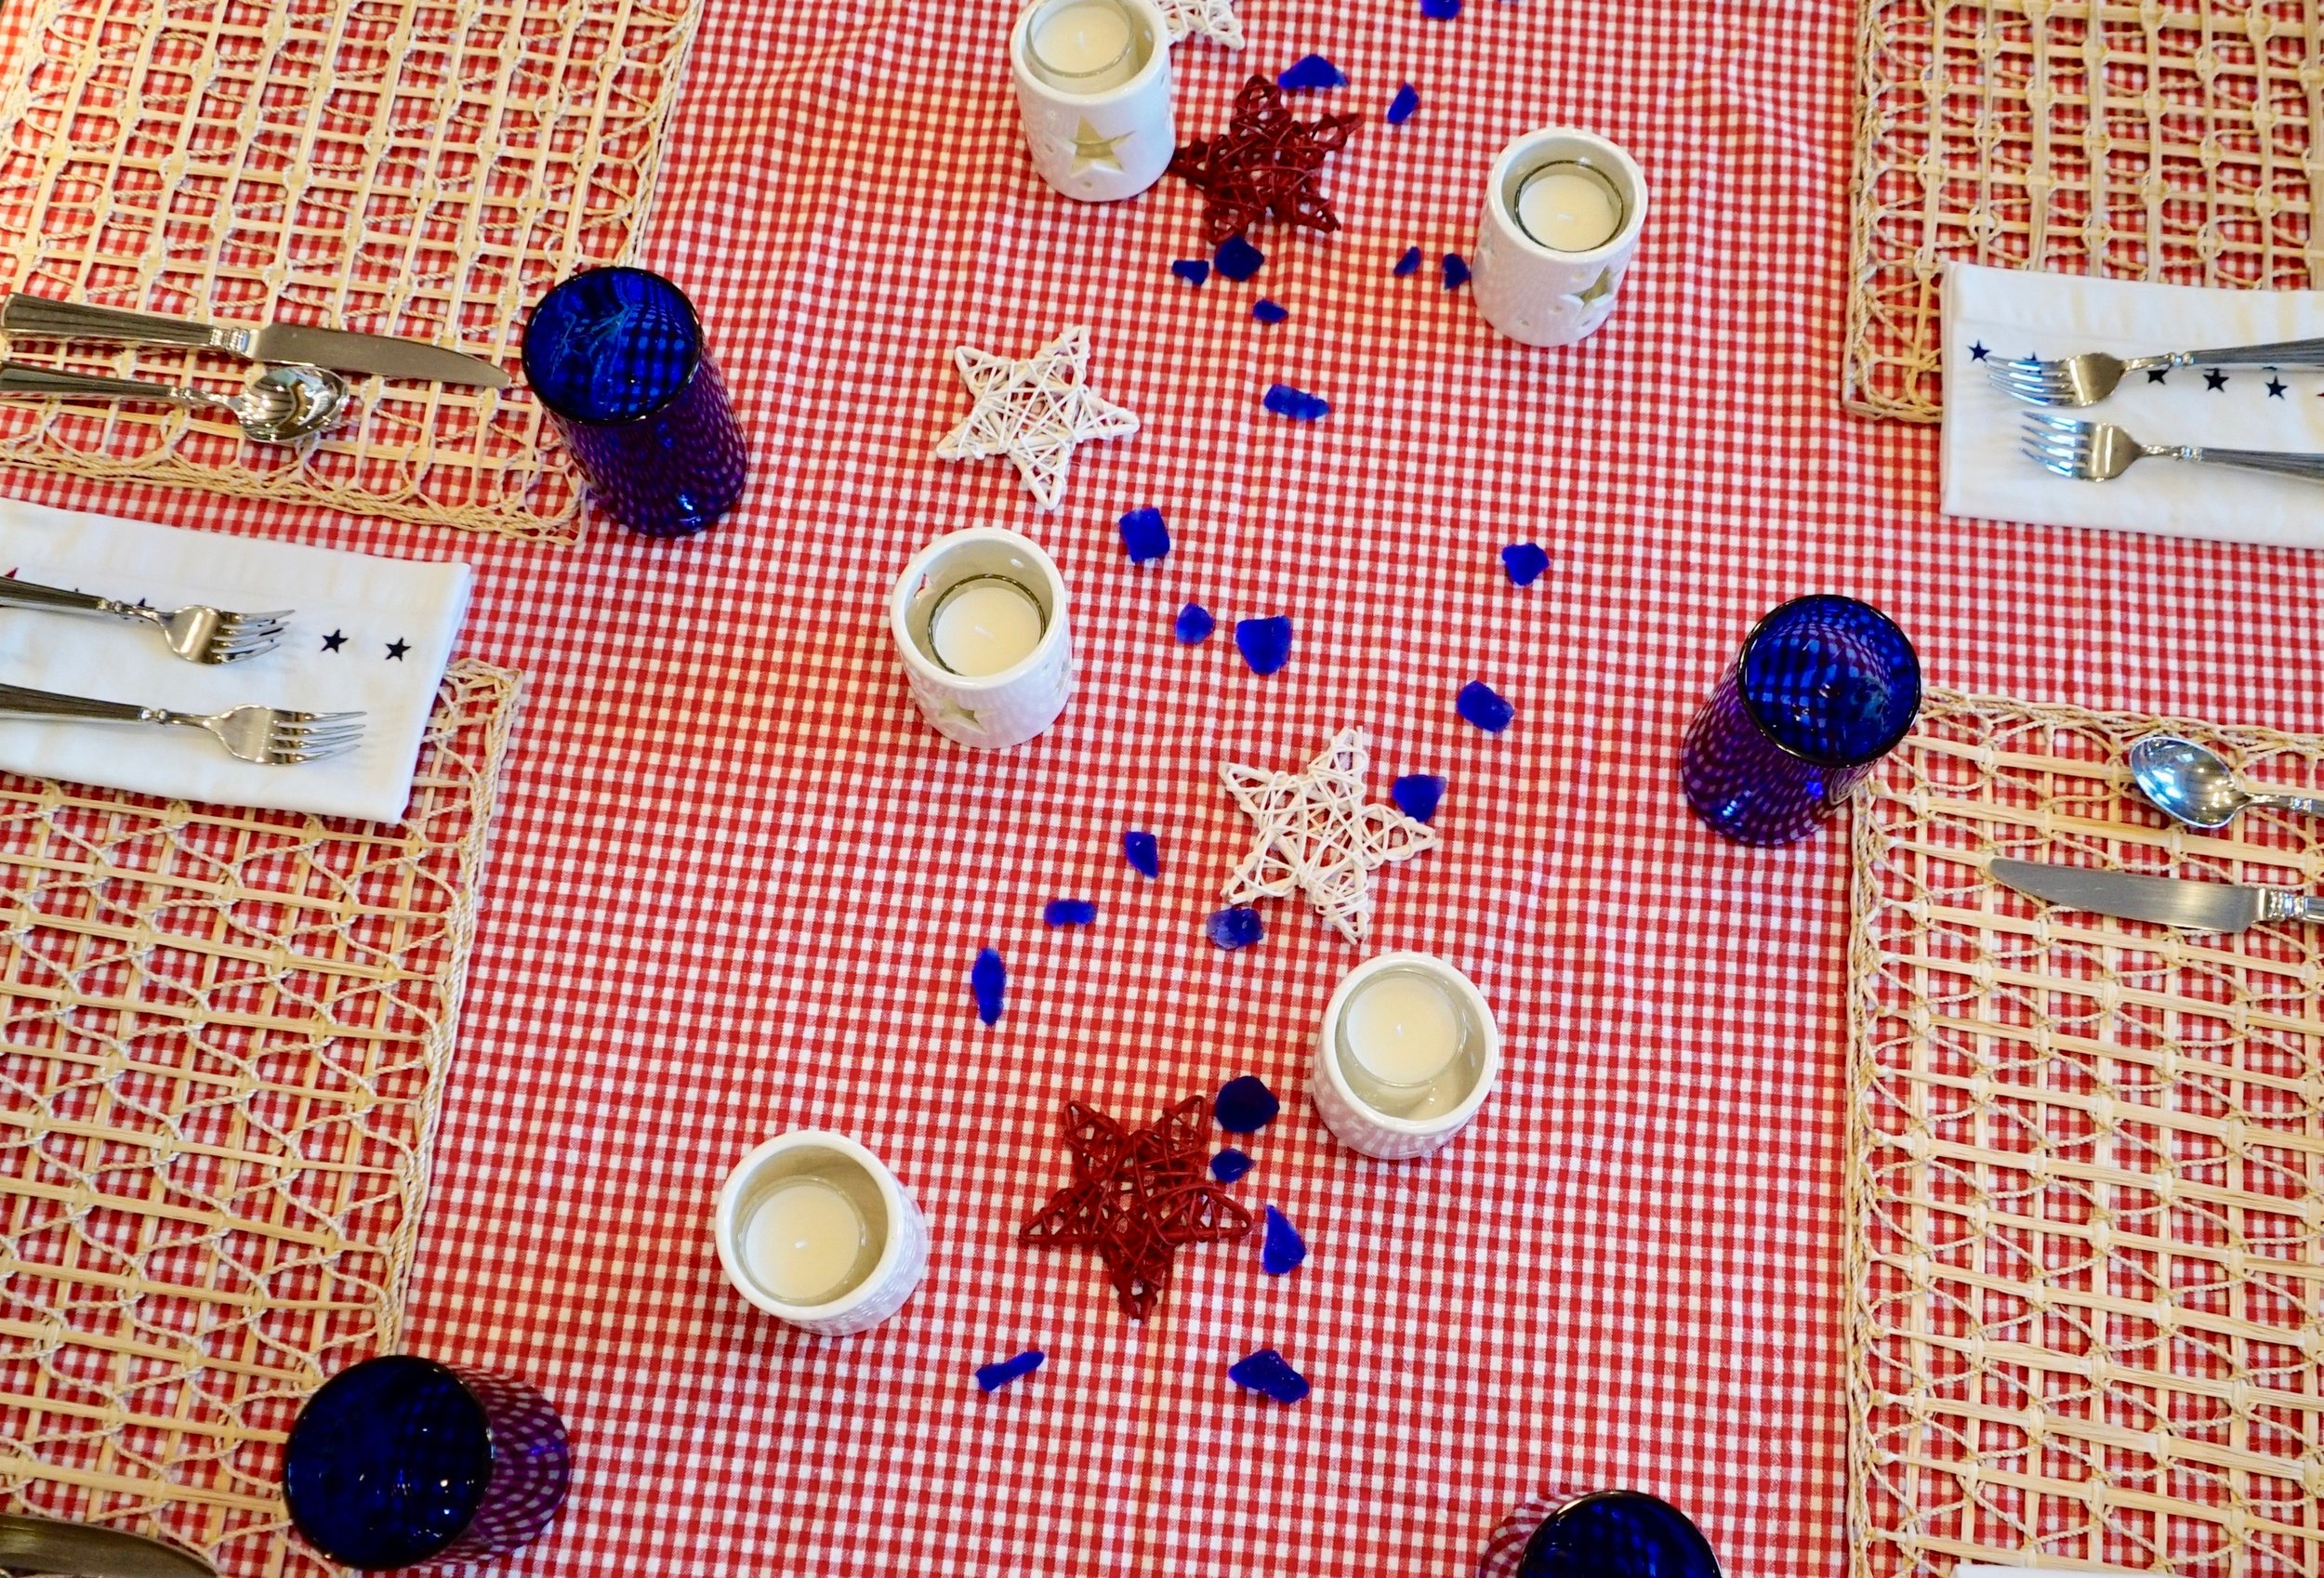 A Festive Table - Red, White & Blue with seaside accents